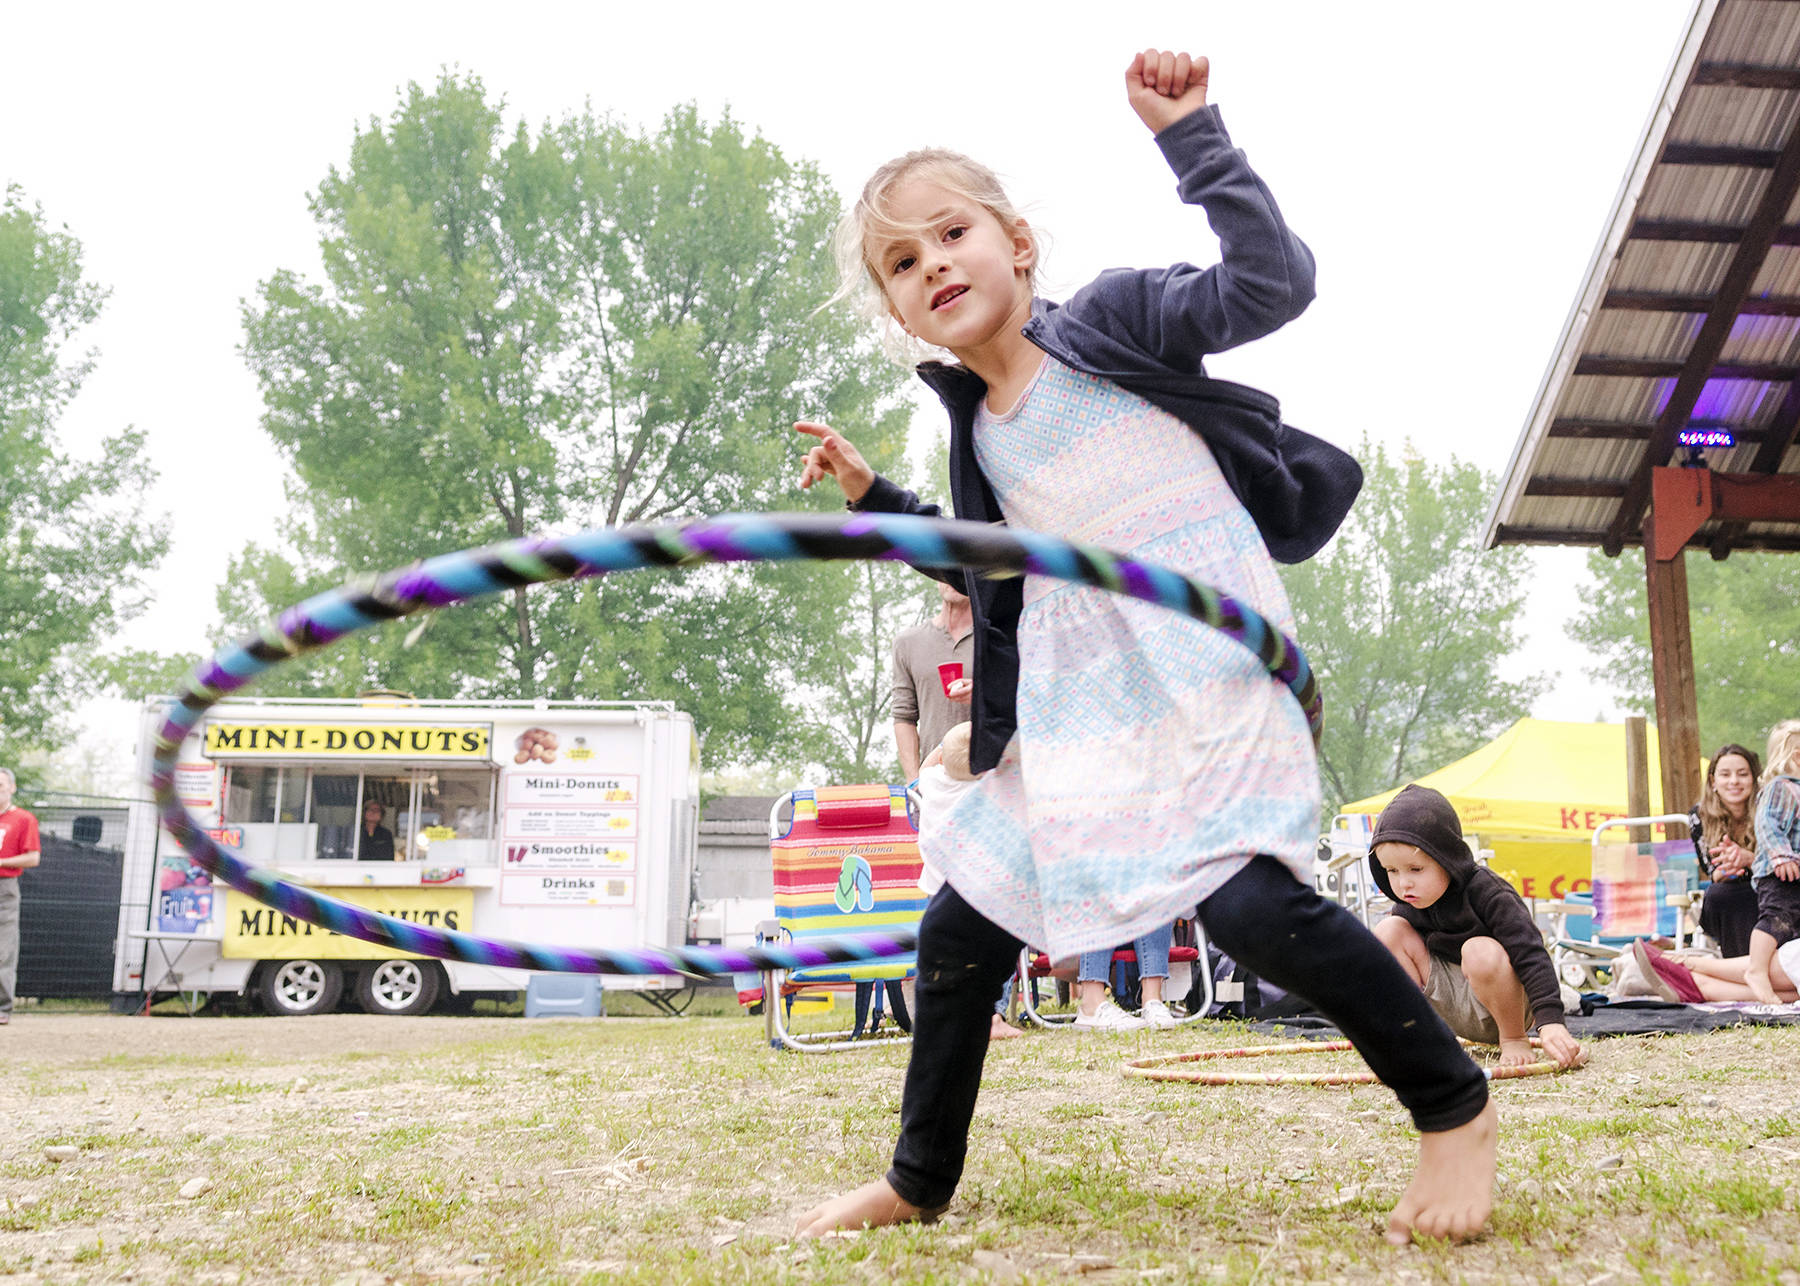 Yeva Mae Gidney gets the hang of a hula hoop over at the Barn Stage at Roots and Blues Saturday, Aug. 18. (Lachlan Labere/Salmon Arm Observer)